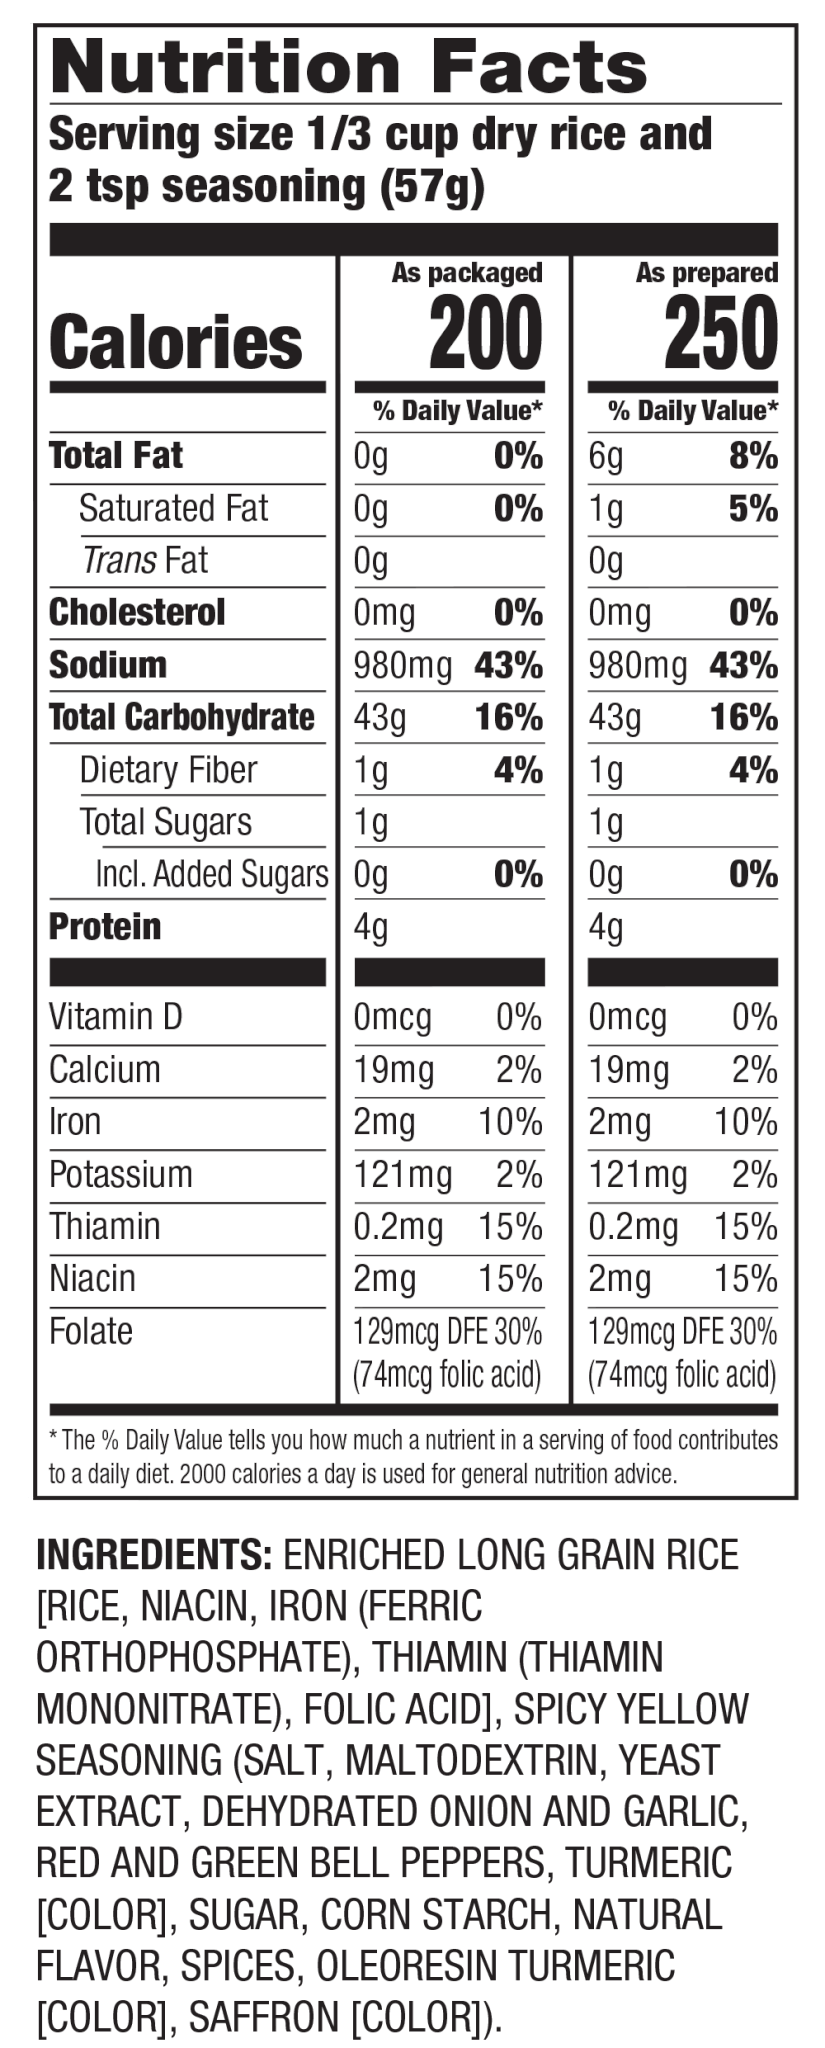 Nutrition Facts Spicy Yellow Seasoned Rice